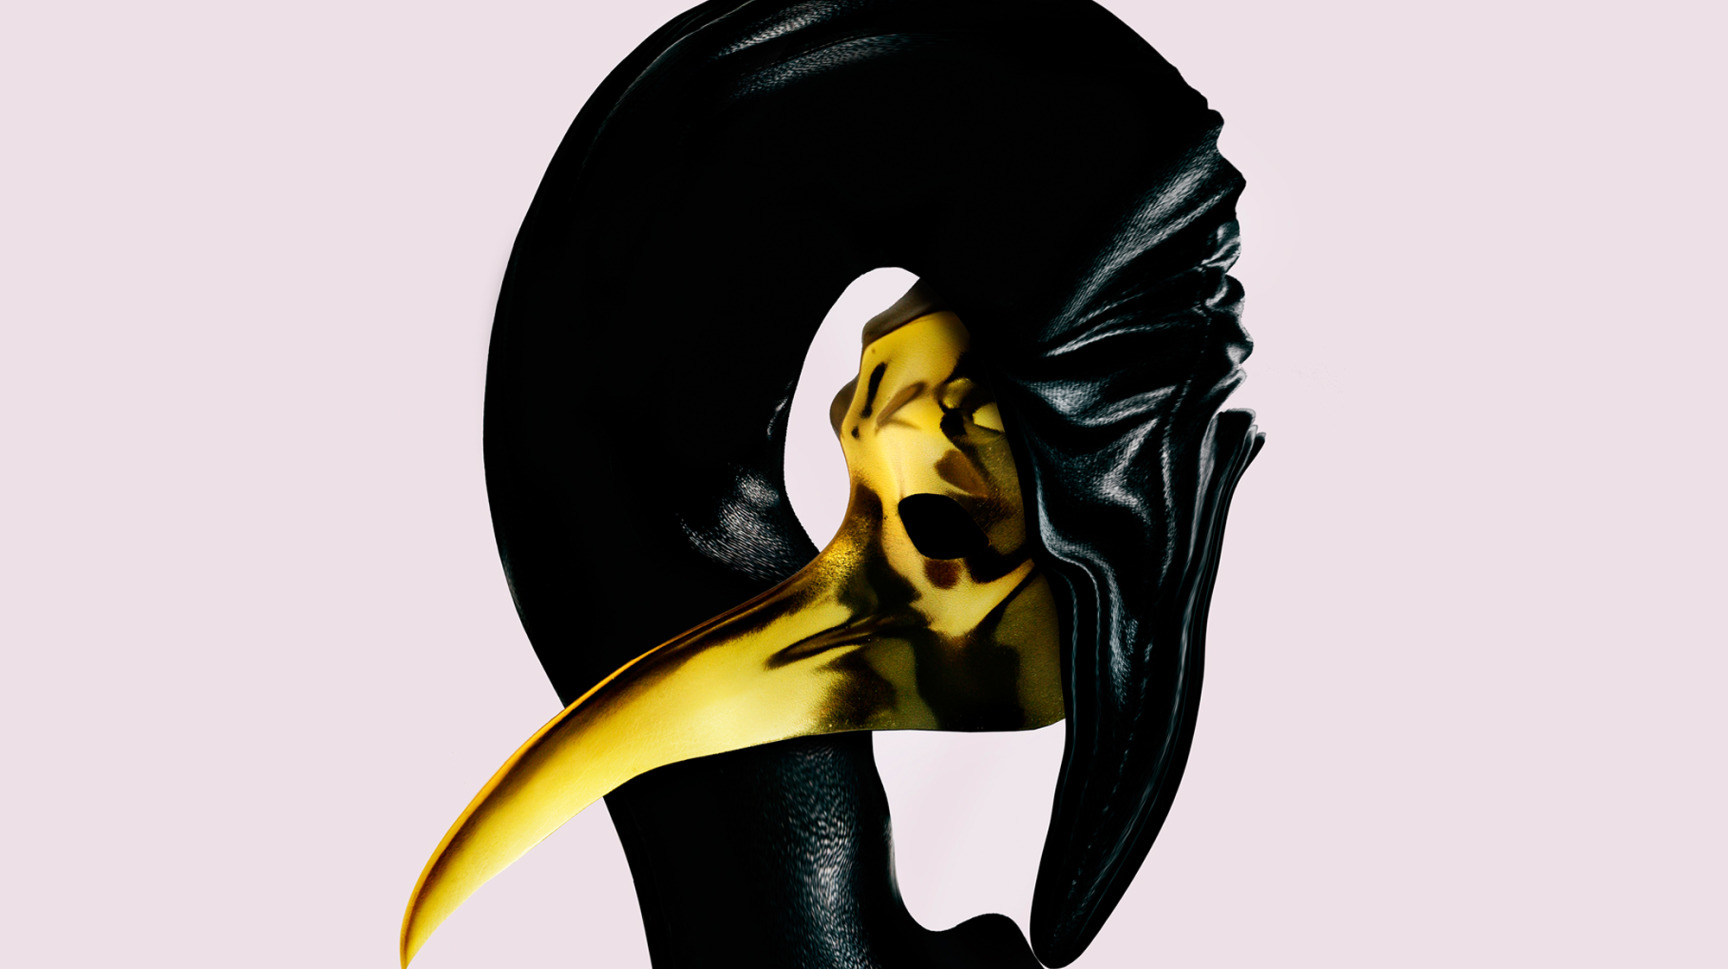 Music<br /><strong>Claptone</strong>